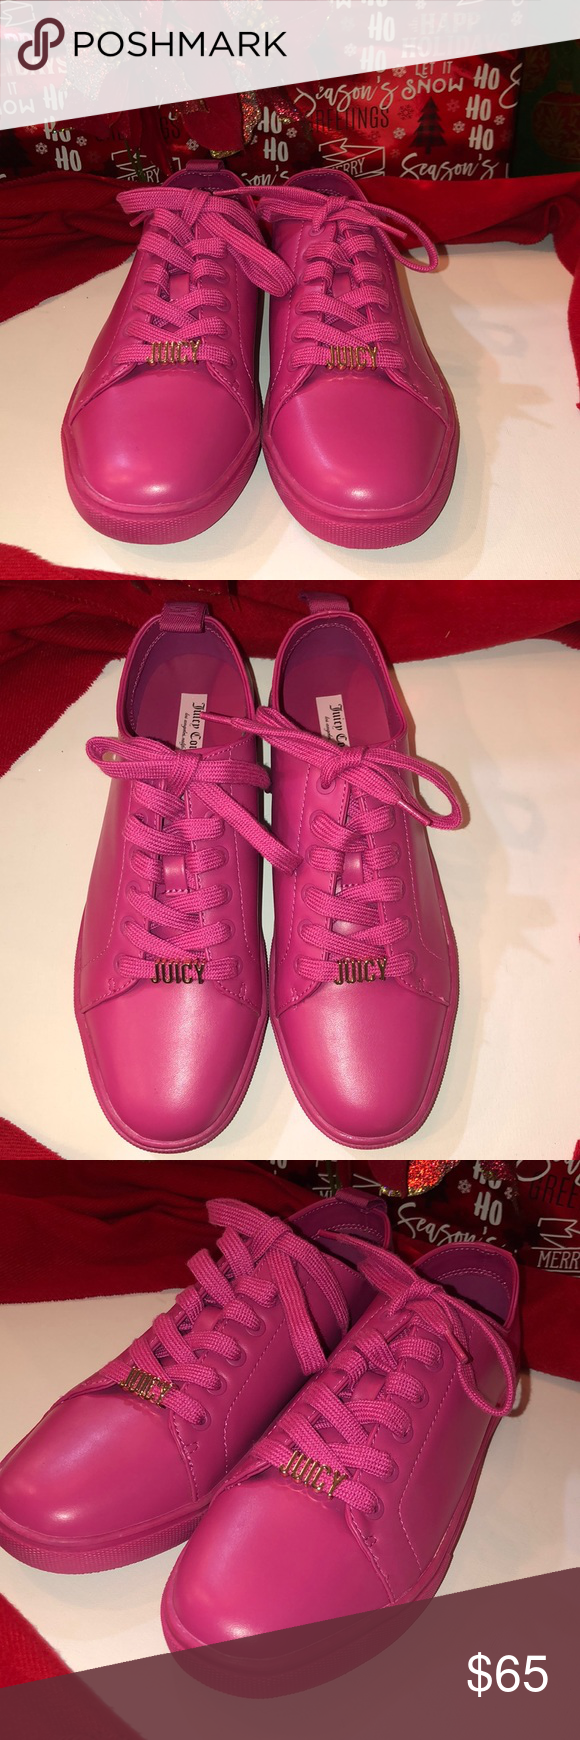 Juicy Couture Sneaker 💕 | Juicy couture